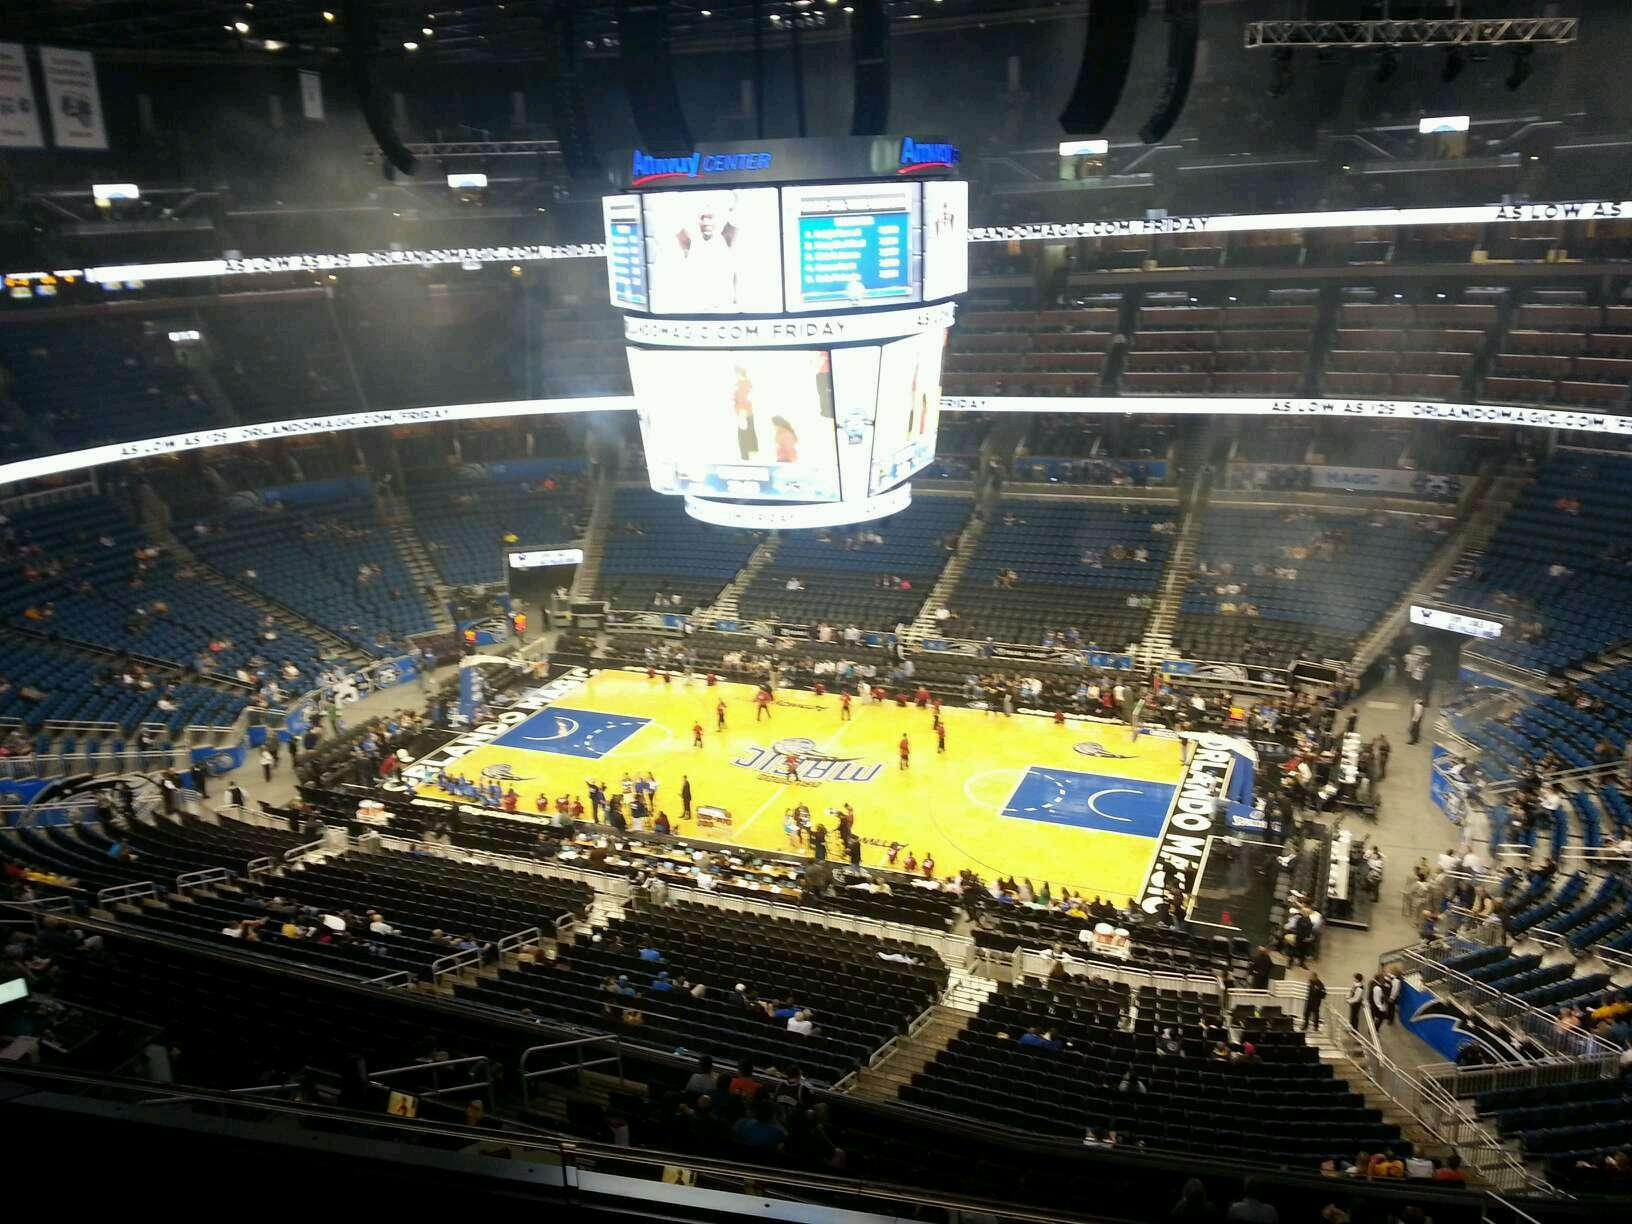 Amway Center Section 207 Row 3 Seat 12